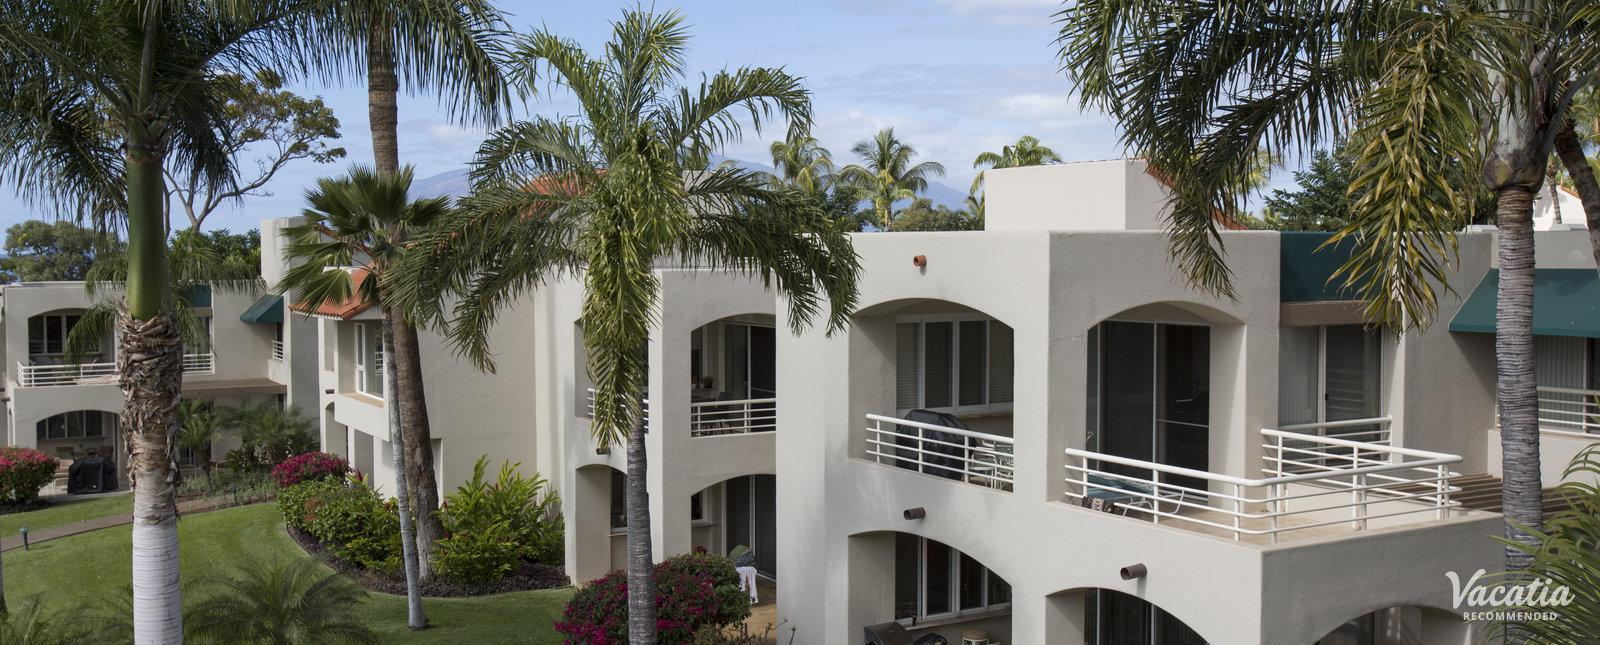 Palms at Wailea Maui by Outrigger grills condo rentals